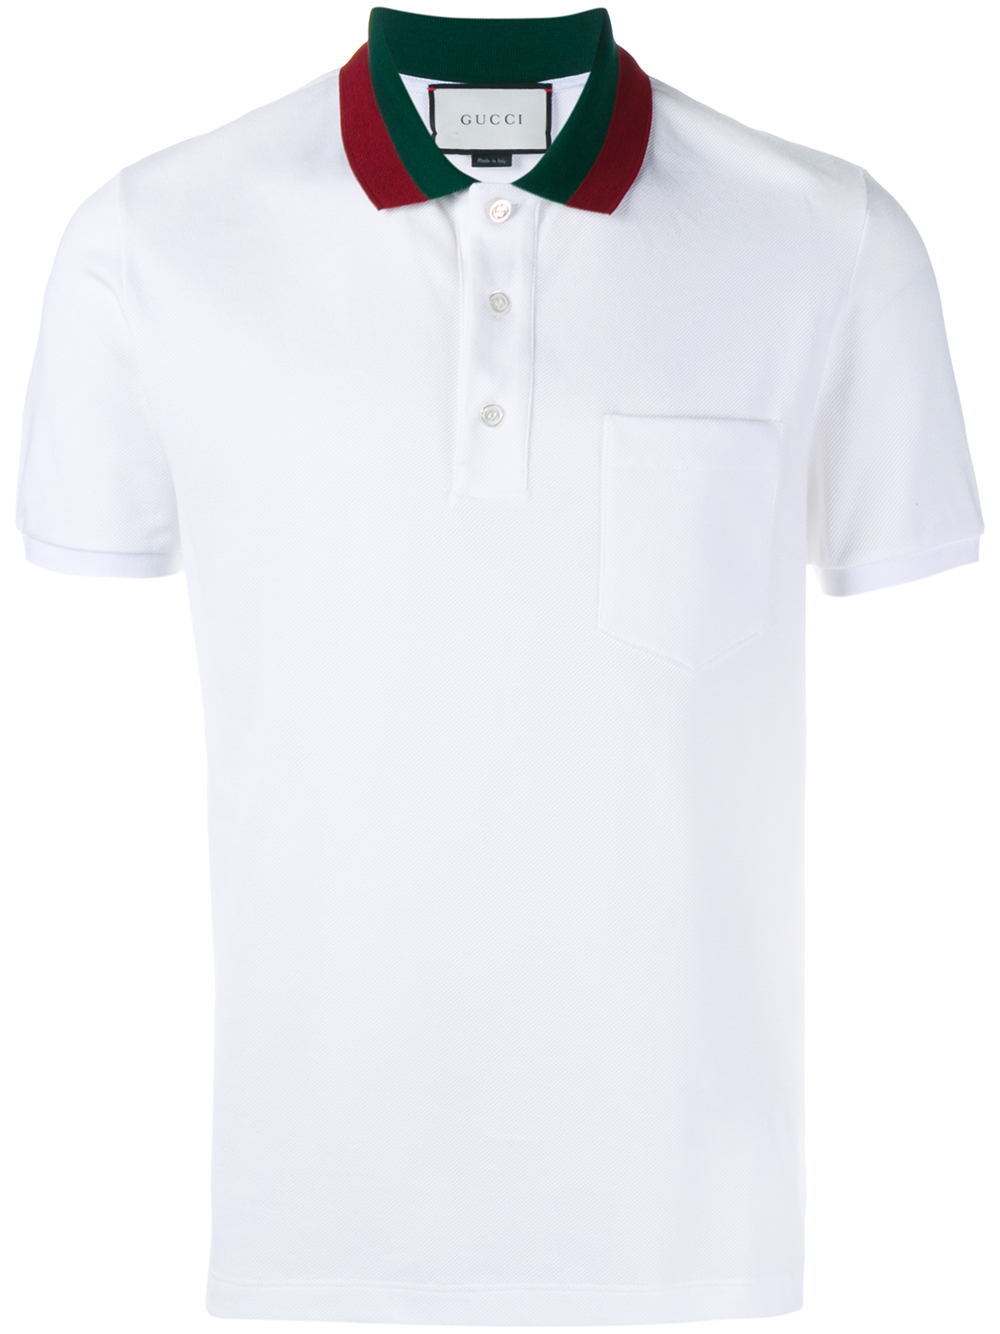 lyst gucci striped collar polo t shirt in white for men. Black Bedroom Furniture Sets. Home Design Ideas